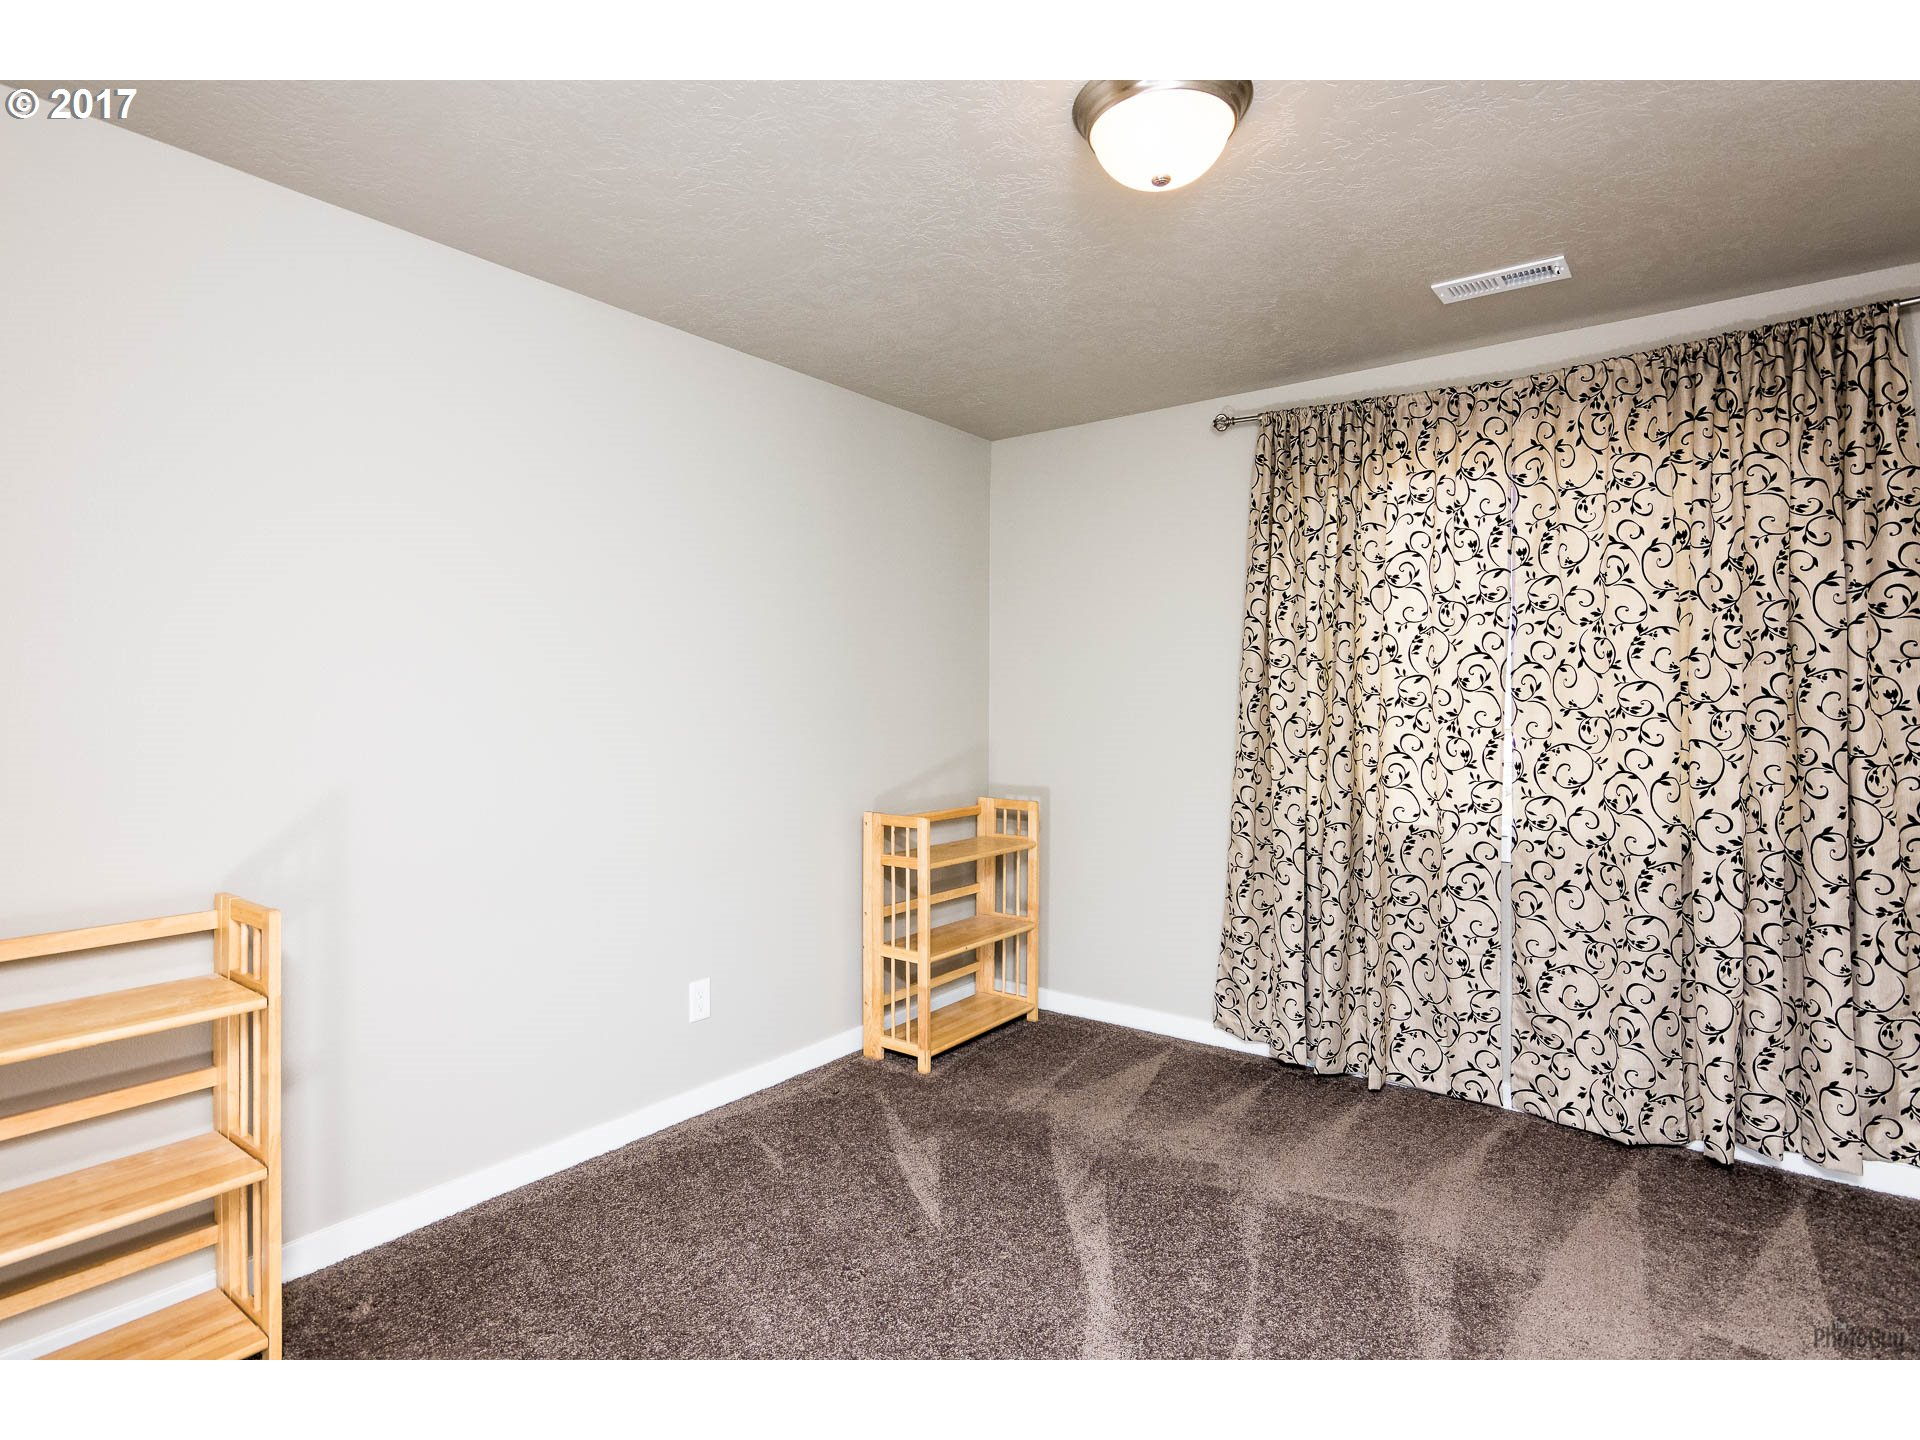 167 SUMAC CT Junction City, OR 97448 - MLS #: 17691650